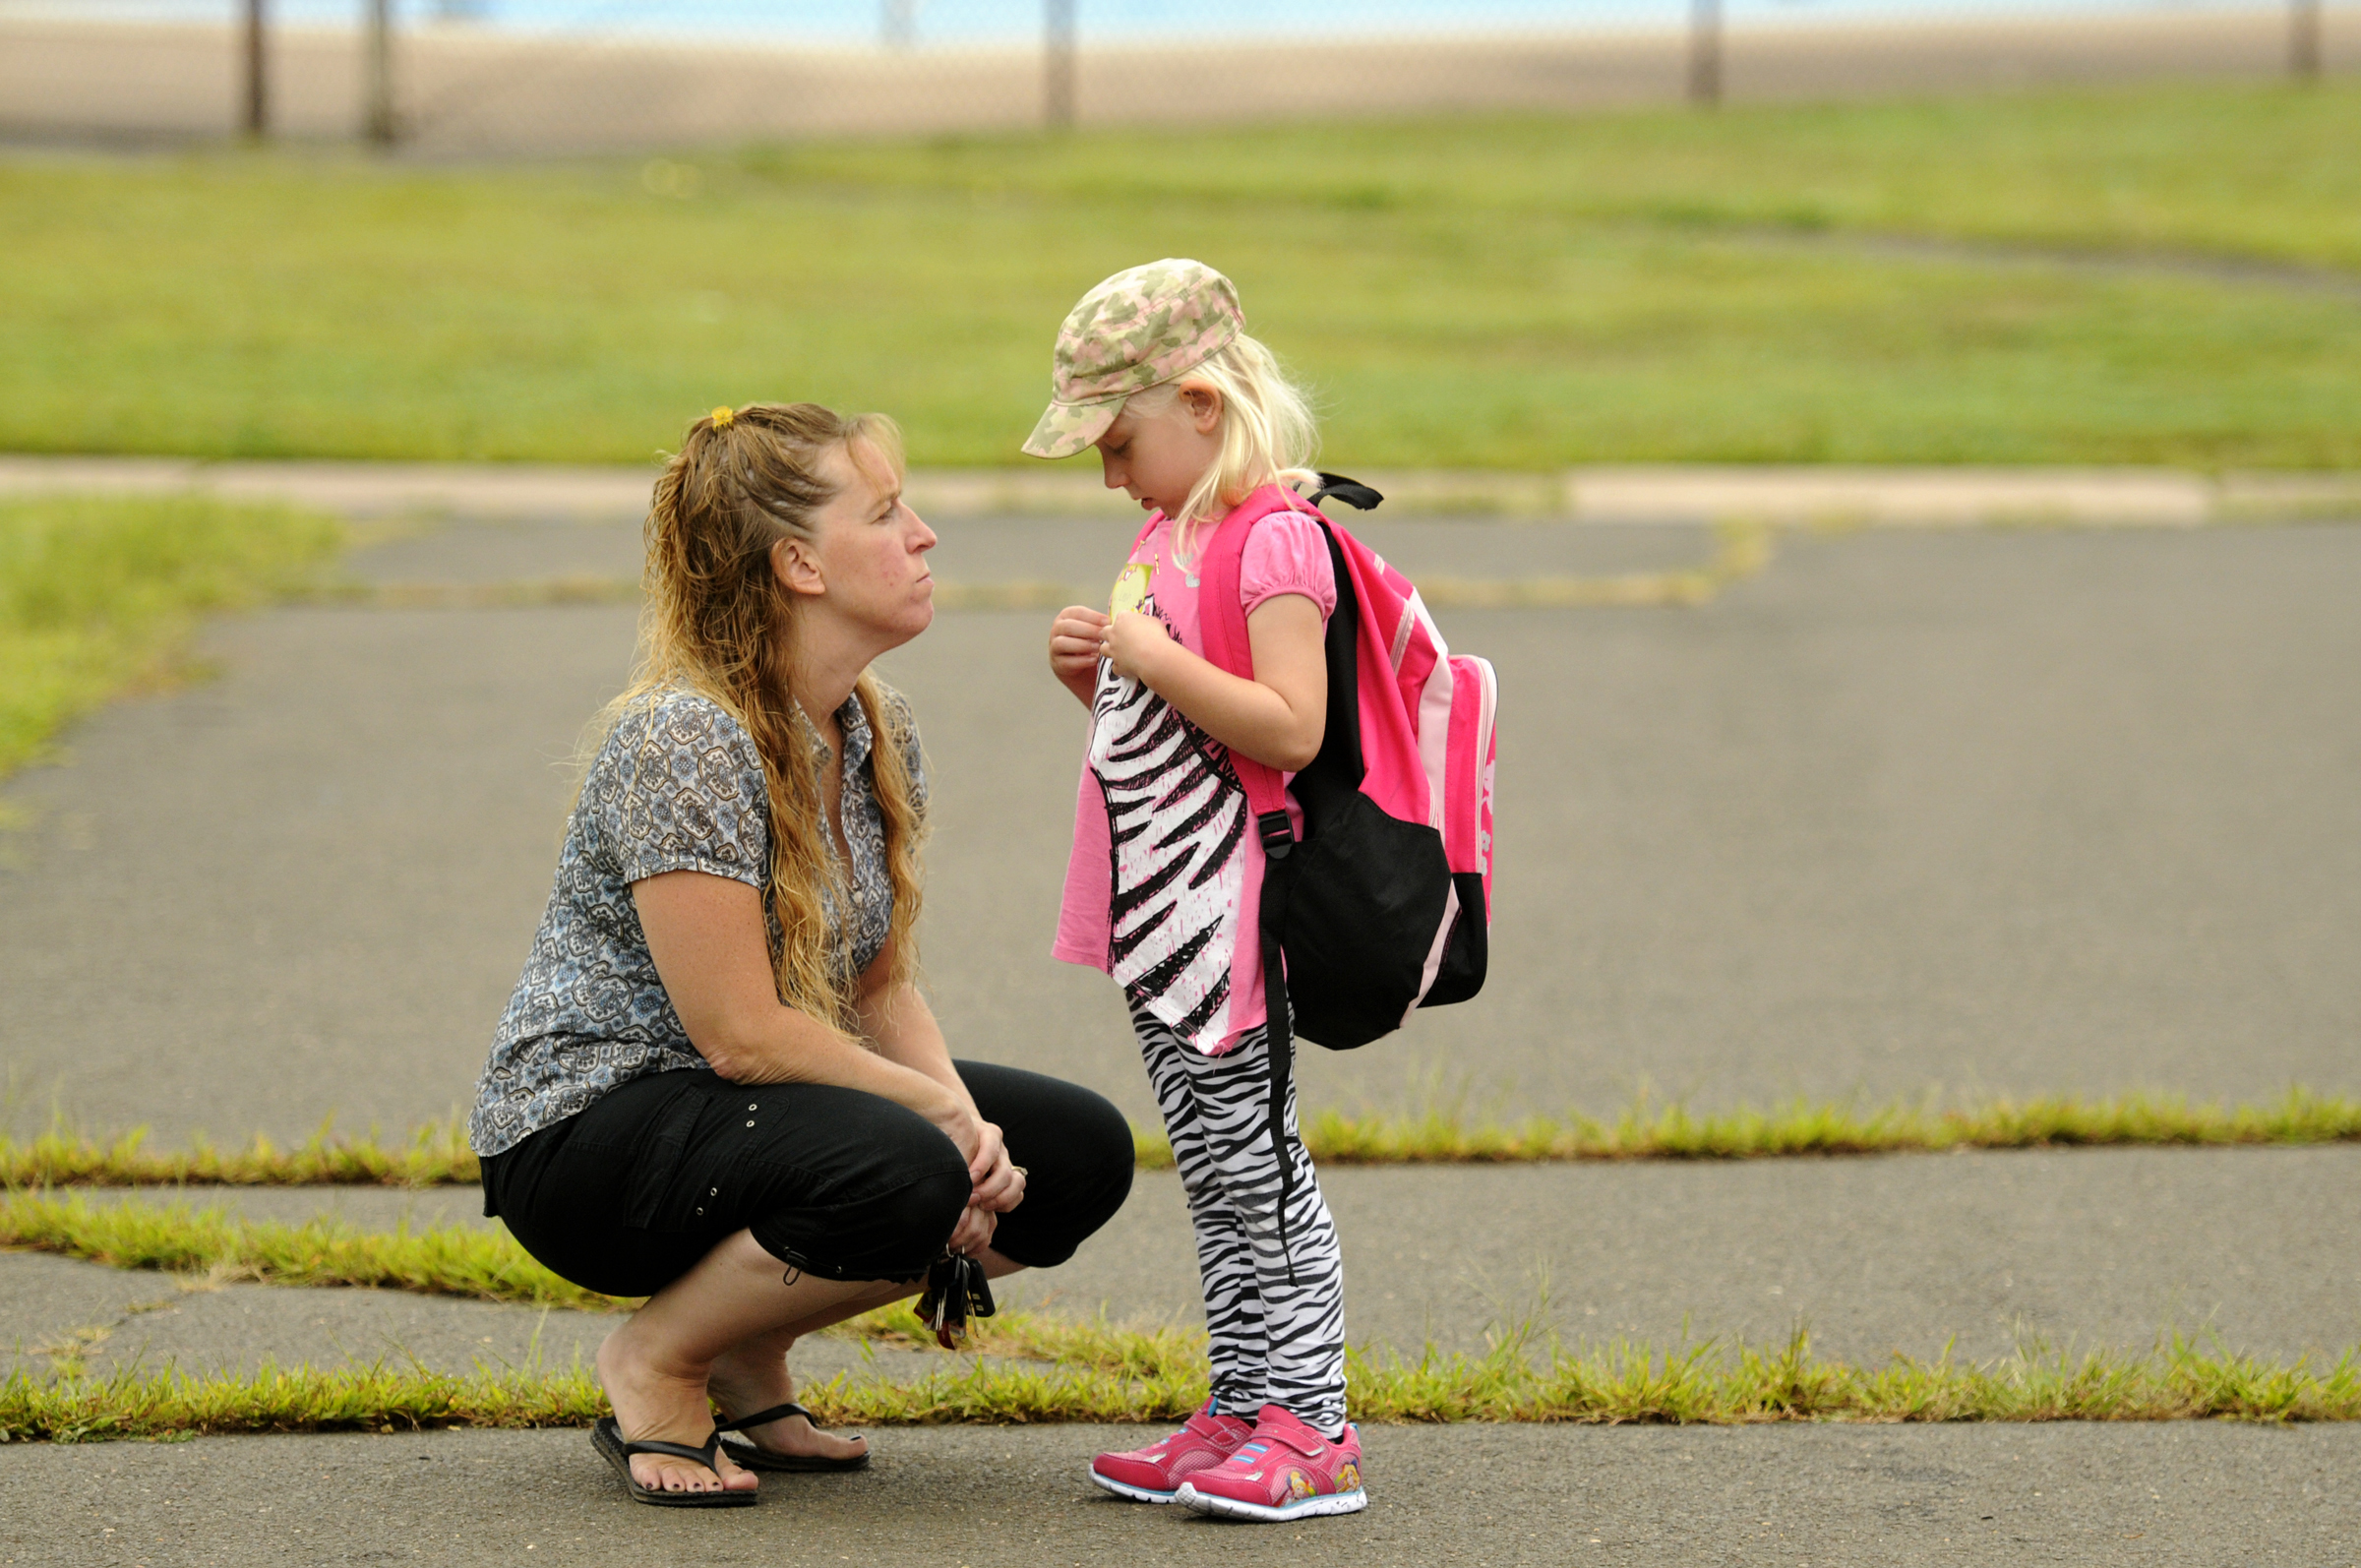 Jill Terry tries to settle some apprehension by her daughter Leah Terry, 5, in the Waddell School playground before the children, escorted by parents, entered for the first day of kindergarten class Wednesday morning.